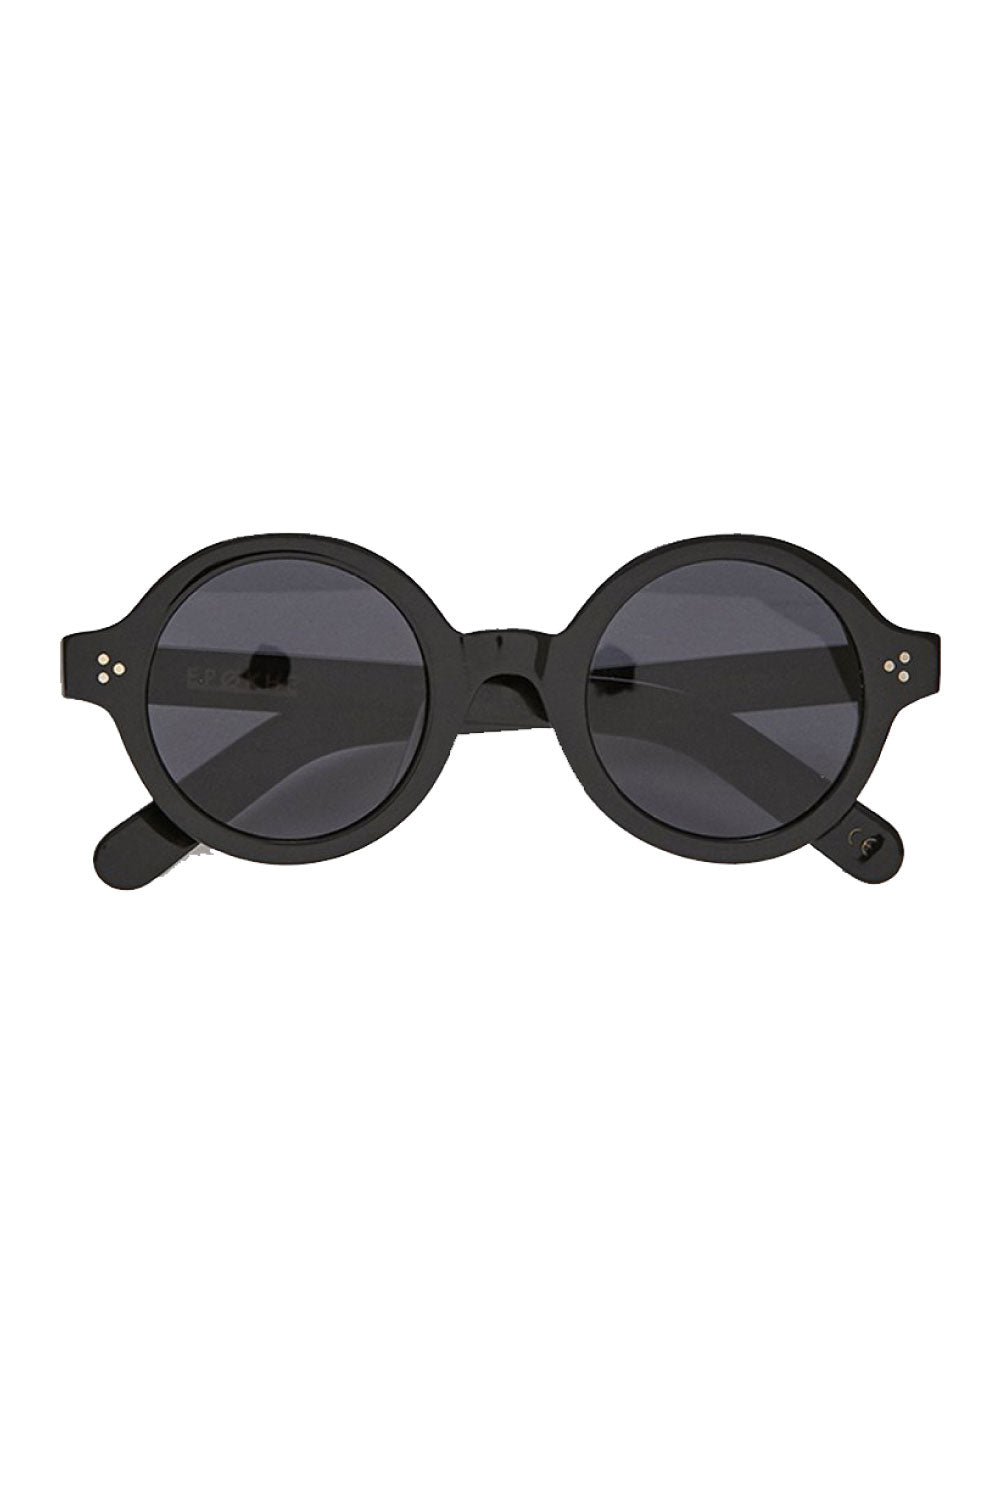 Epokhe Ollo Black Polished Sunglasses